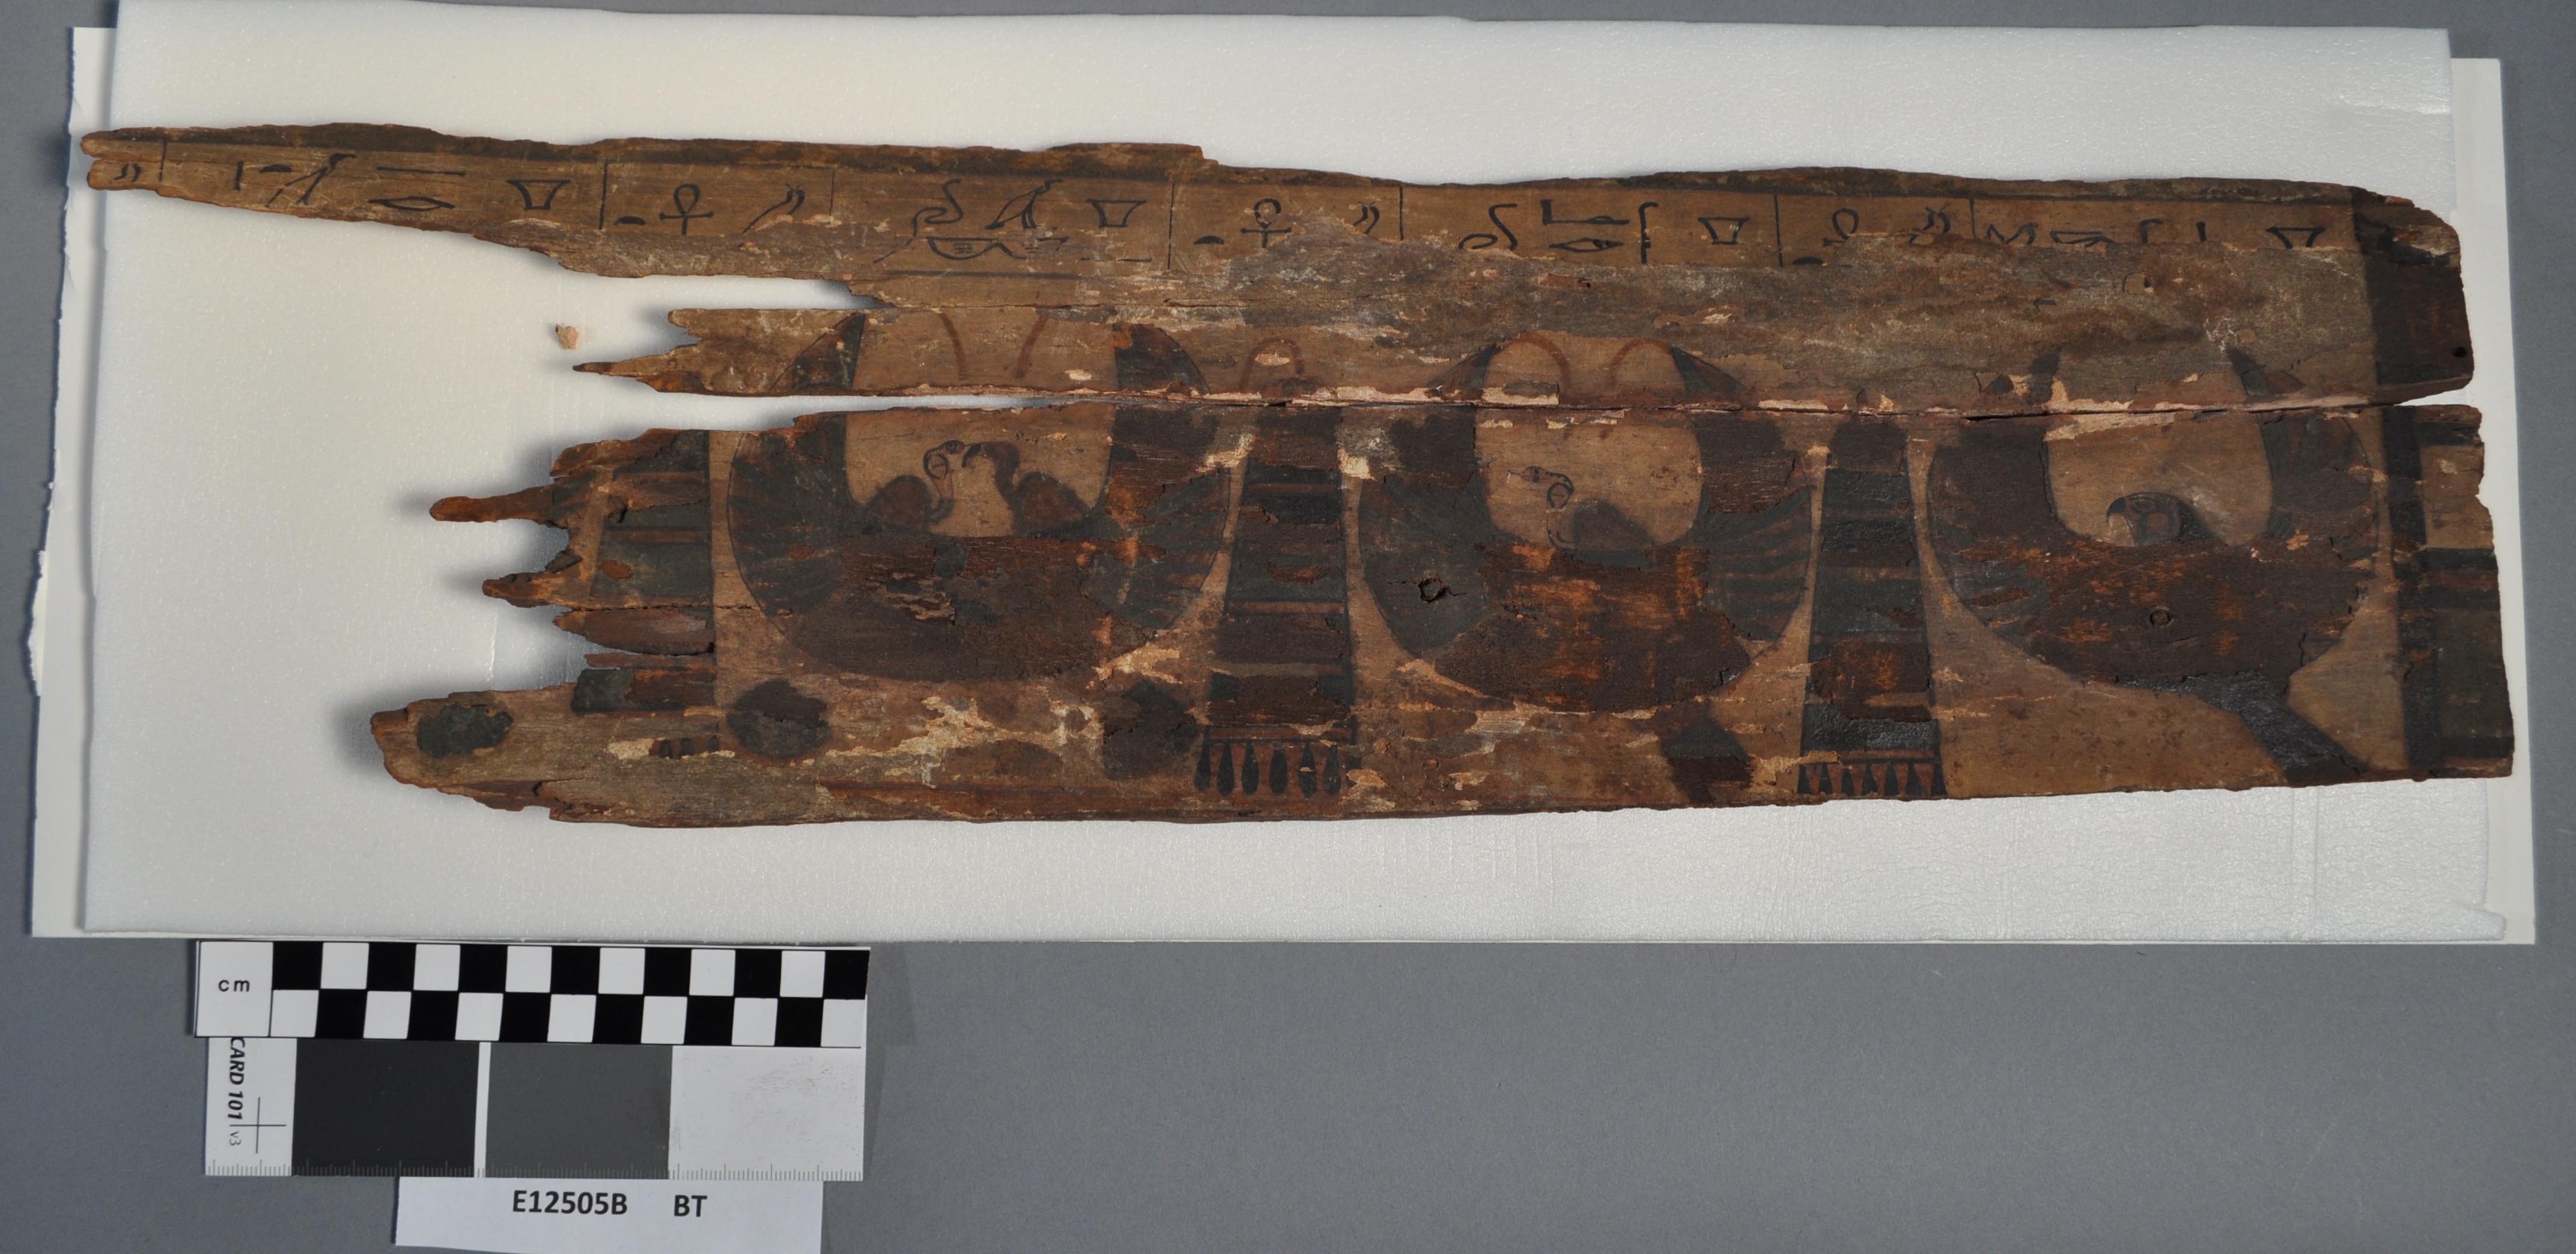 This fragment features 3 usekh collars, which were often reserved for nobility. Beside each collar is a mankhet, or counterpoise. The hieroglyphs above are the names of each of the collars, which are slightly different.